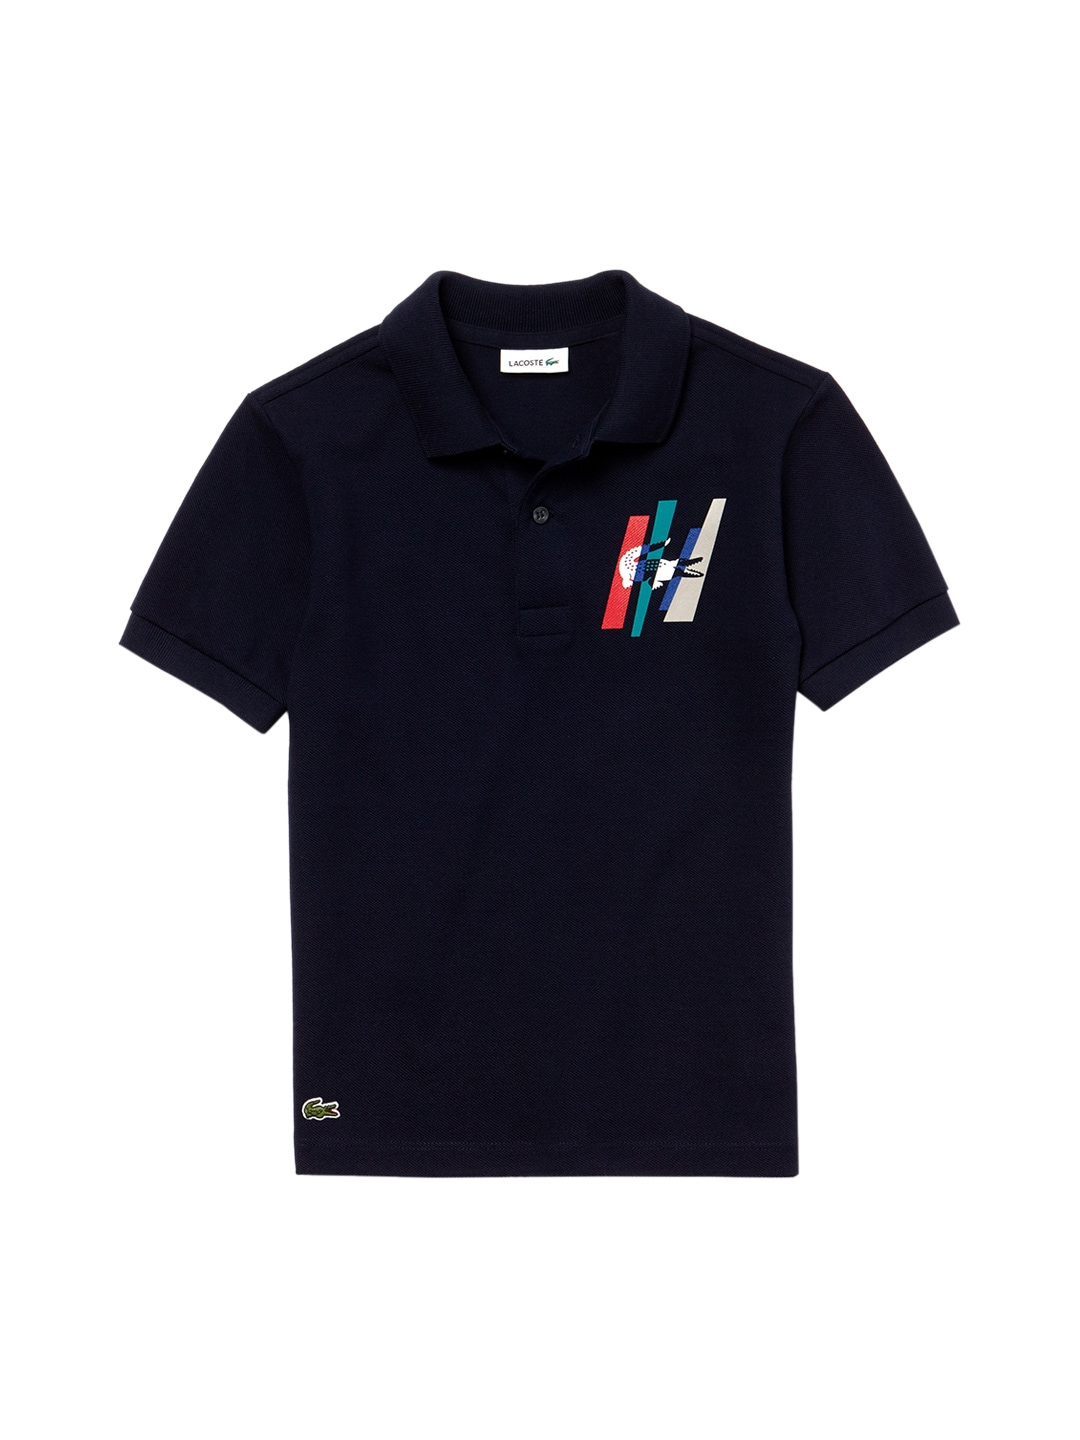 93f98f2de Boys T shirts - Buy T shirts for Boys online in India